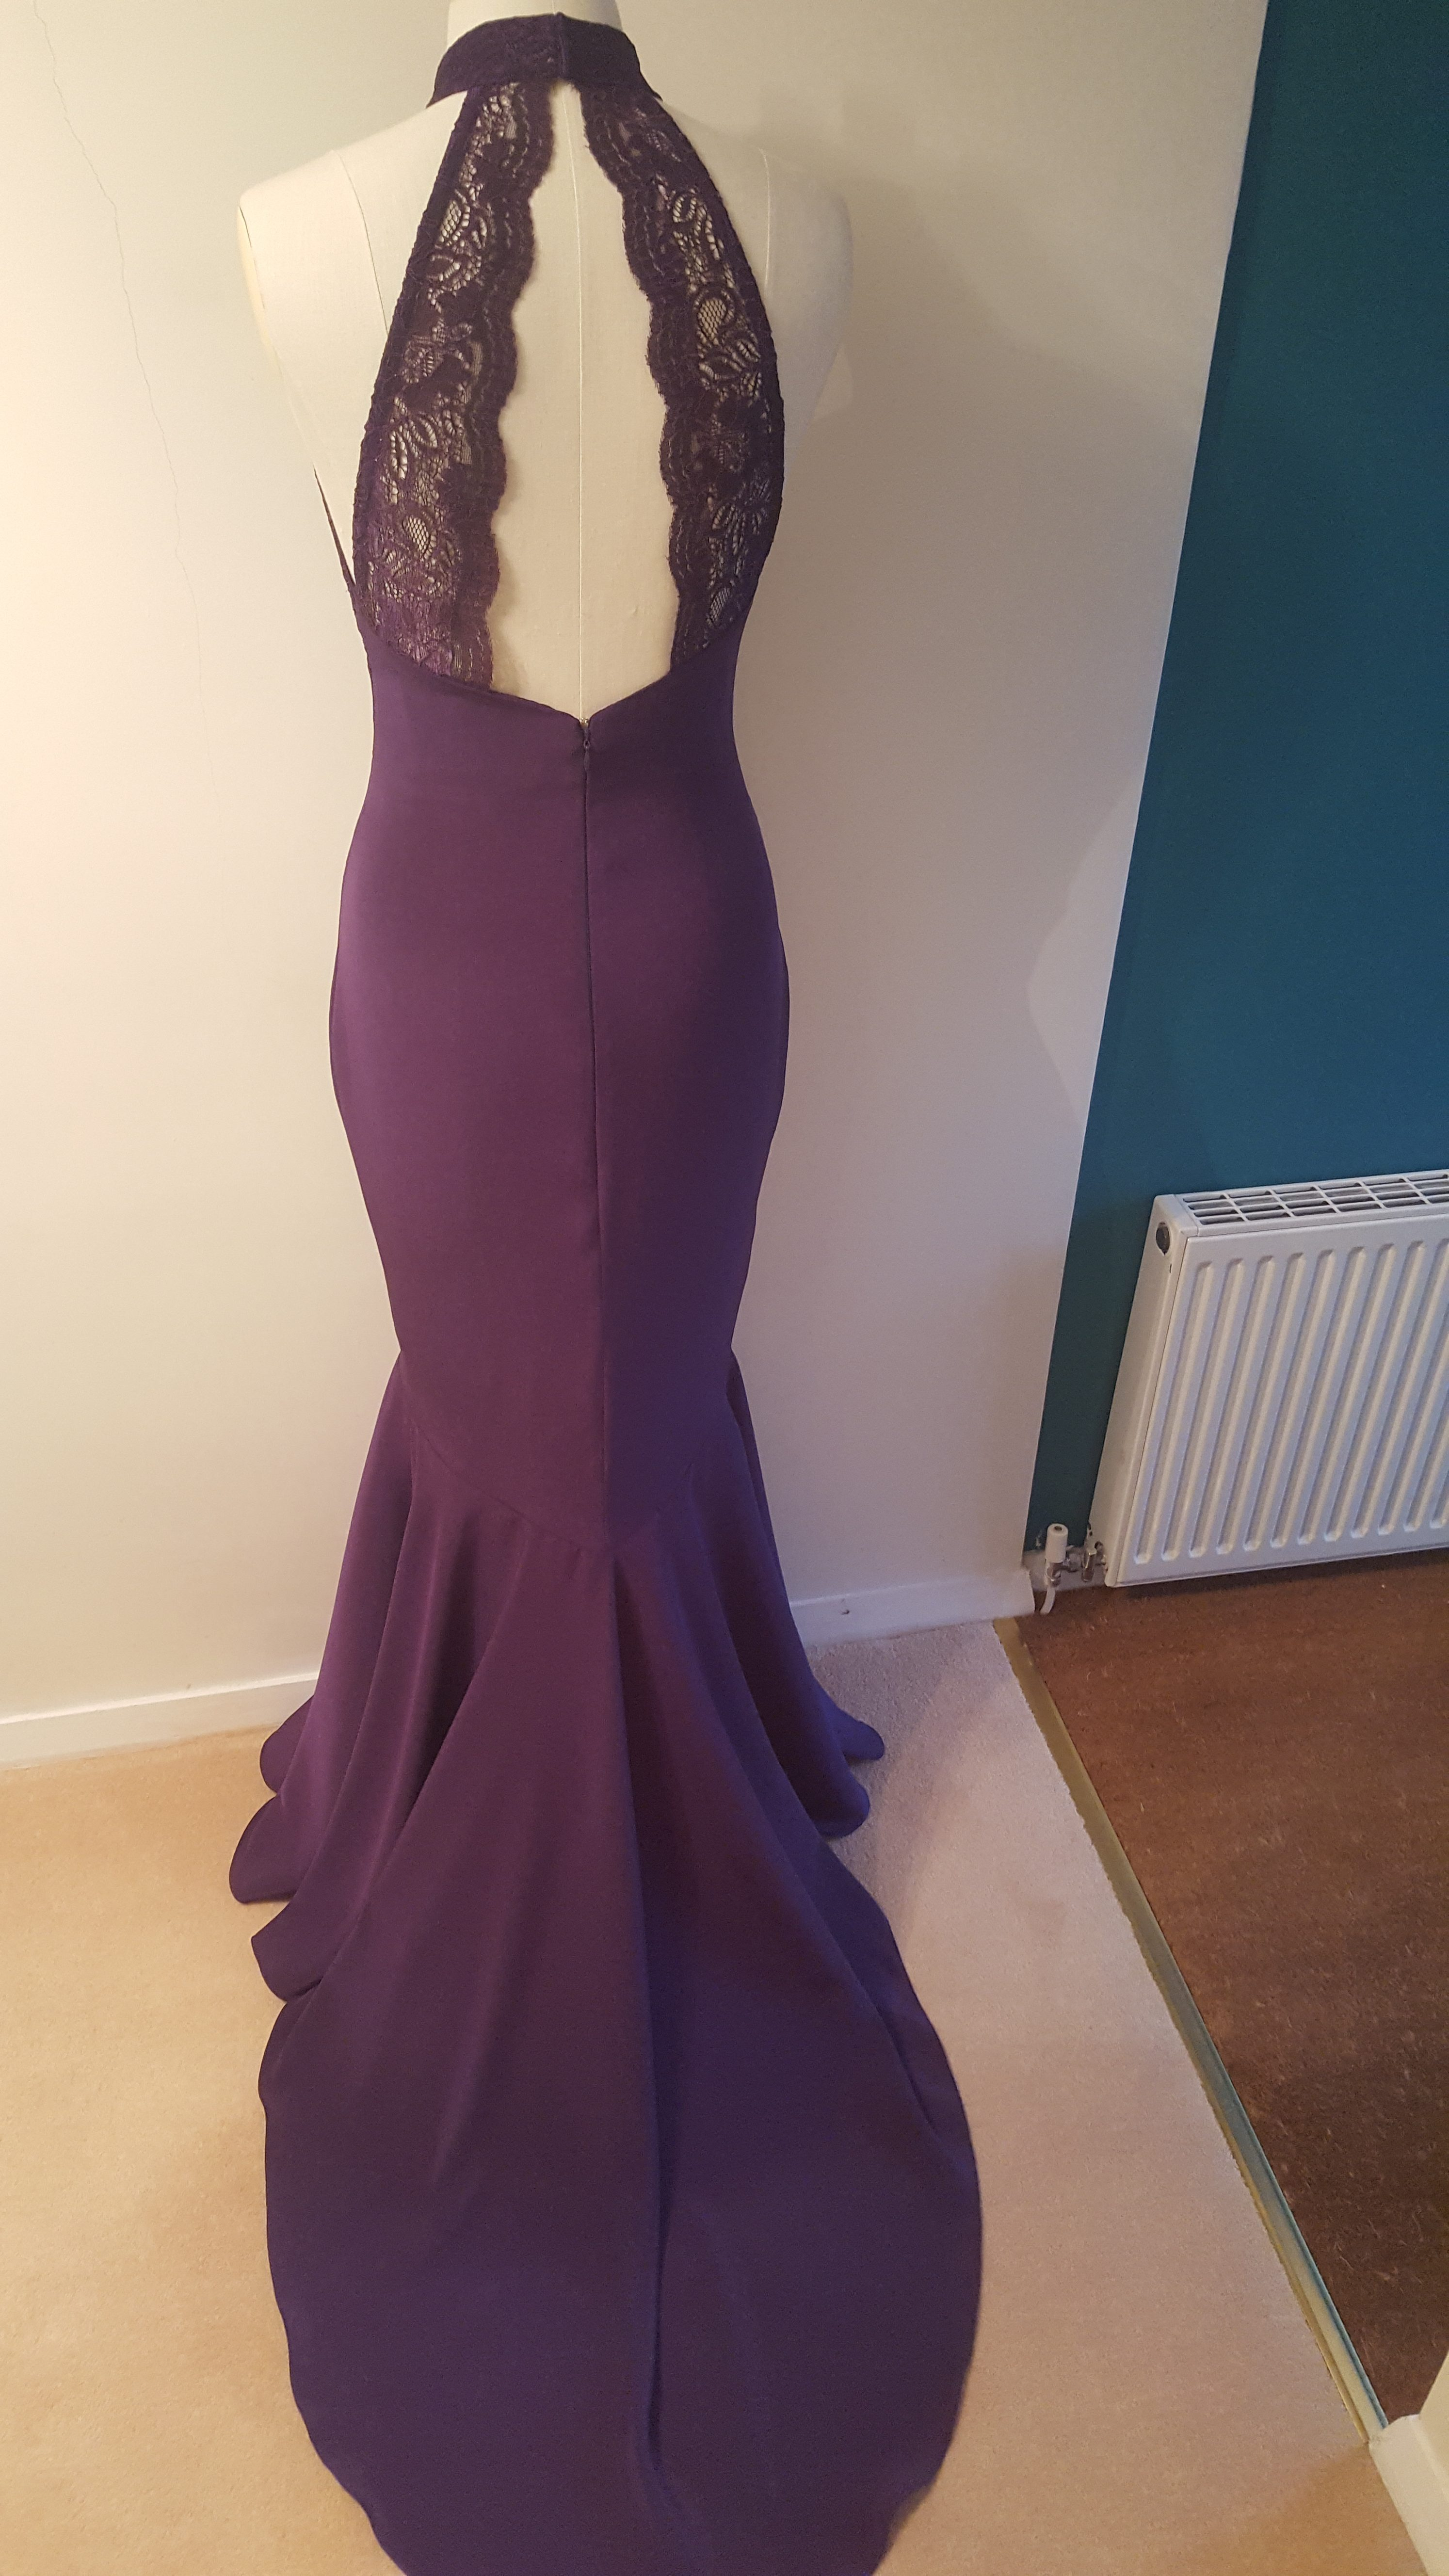 back view of purple prom dress